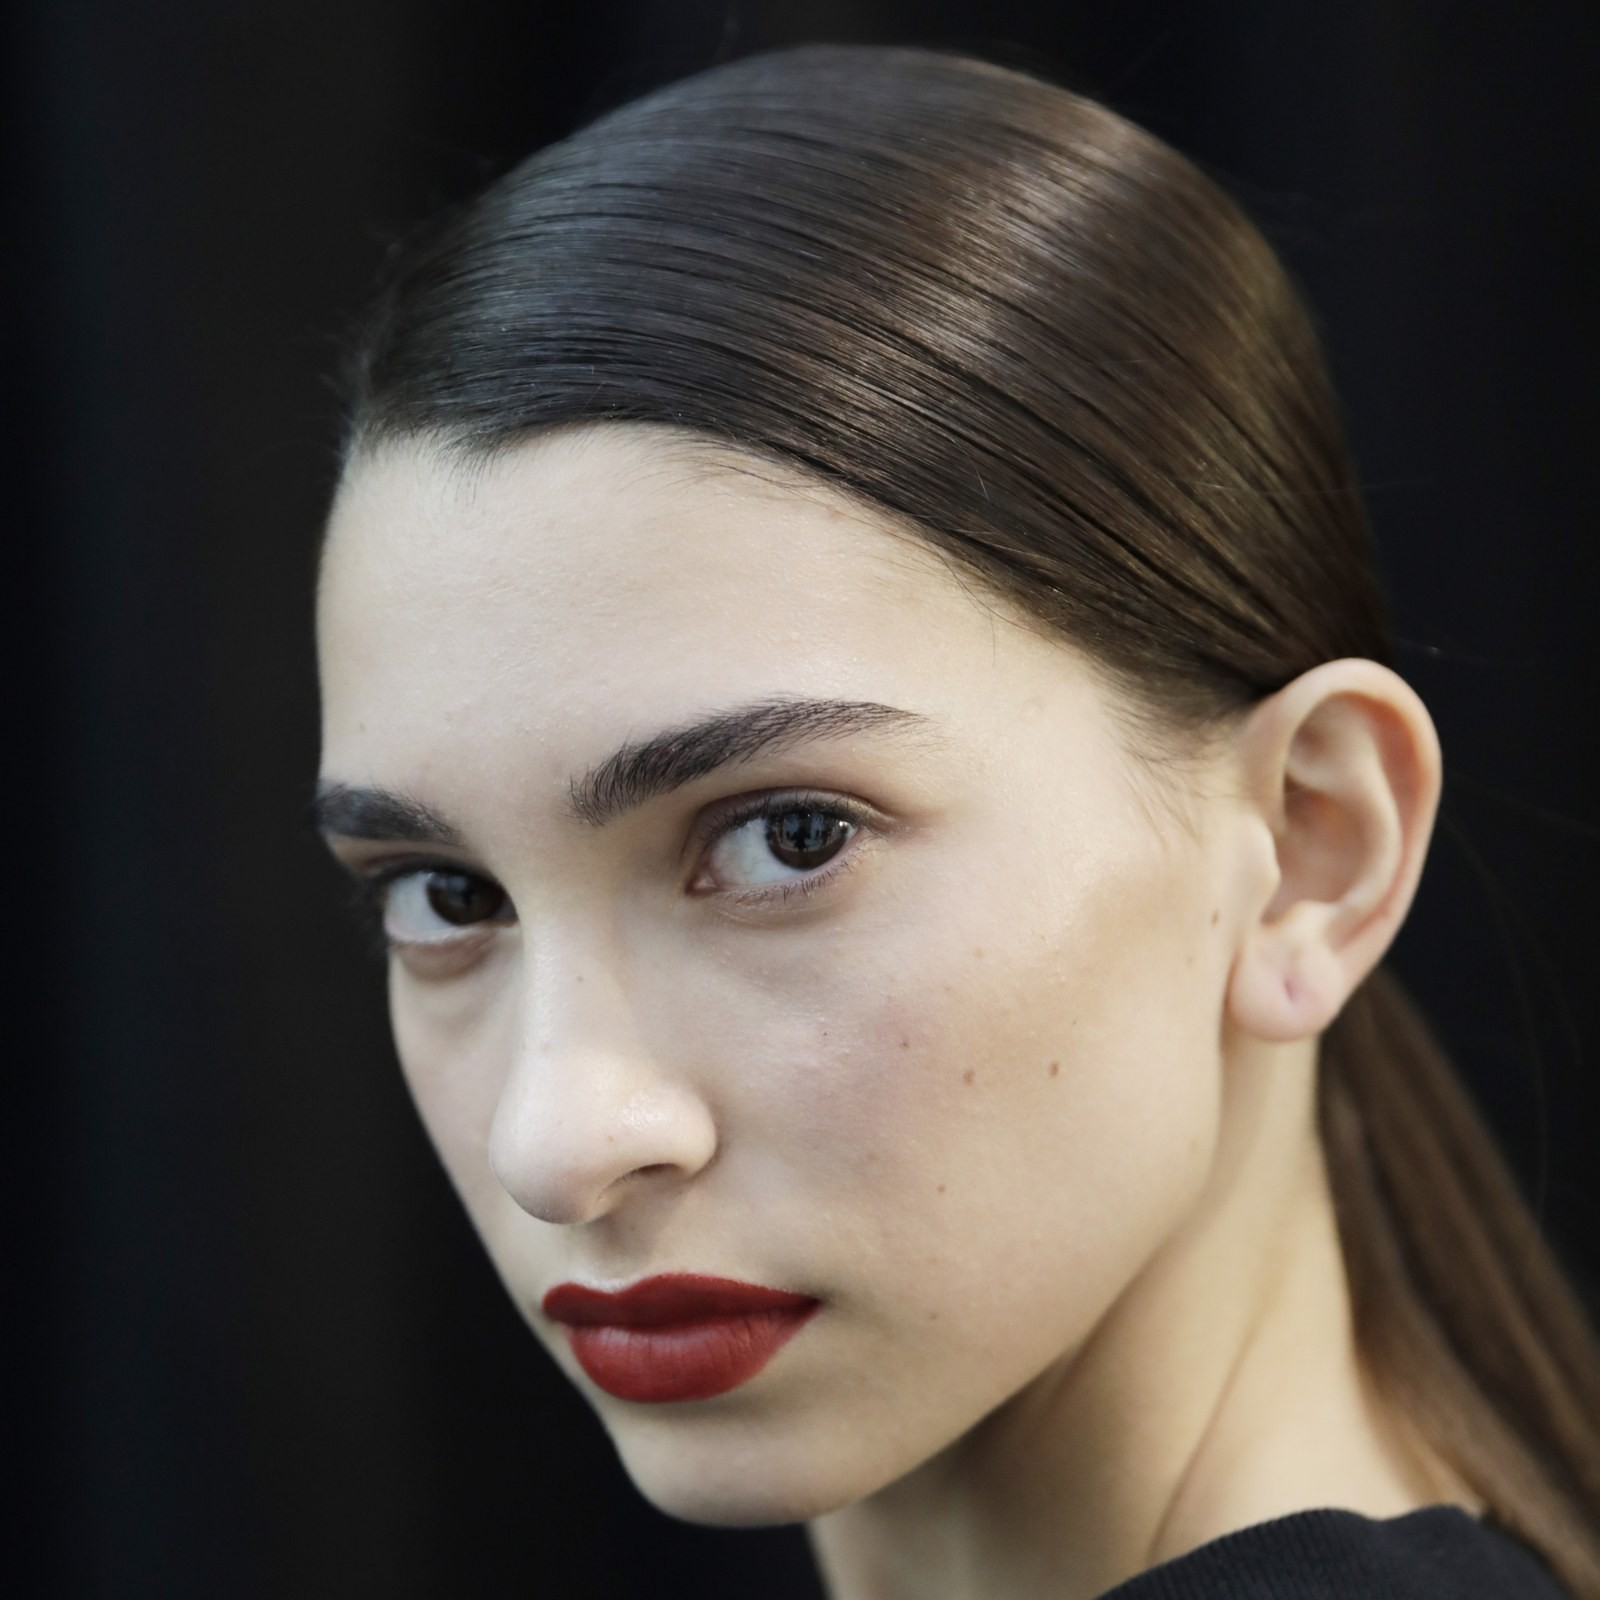 milan-fashion-week-aw-2020-jil-sander-makeup-hair.jpg